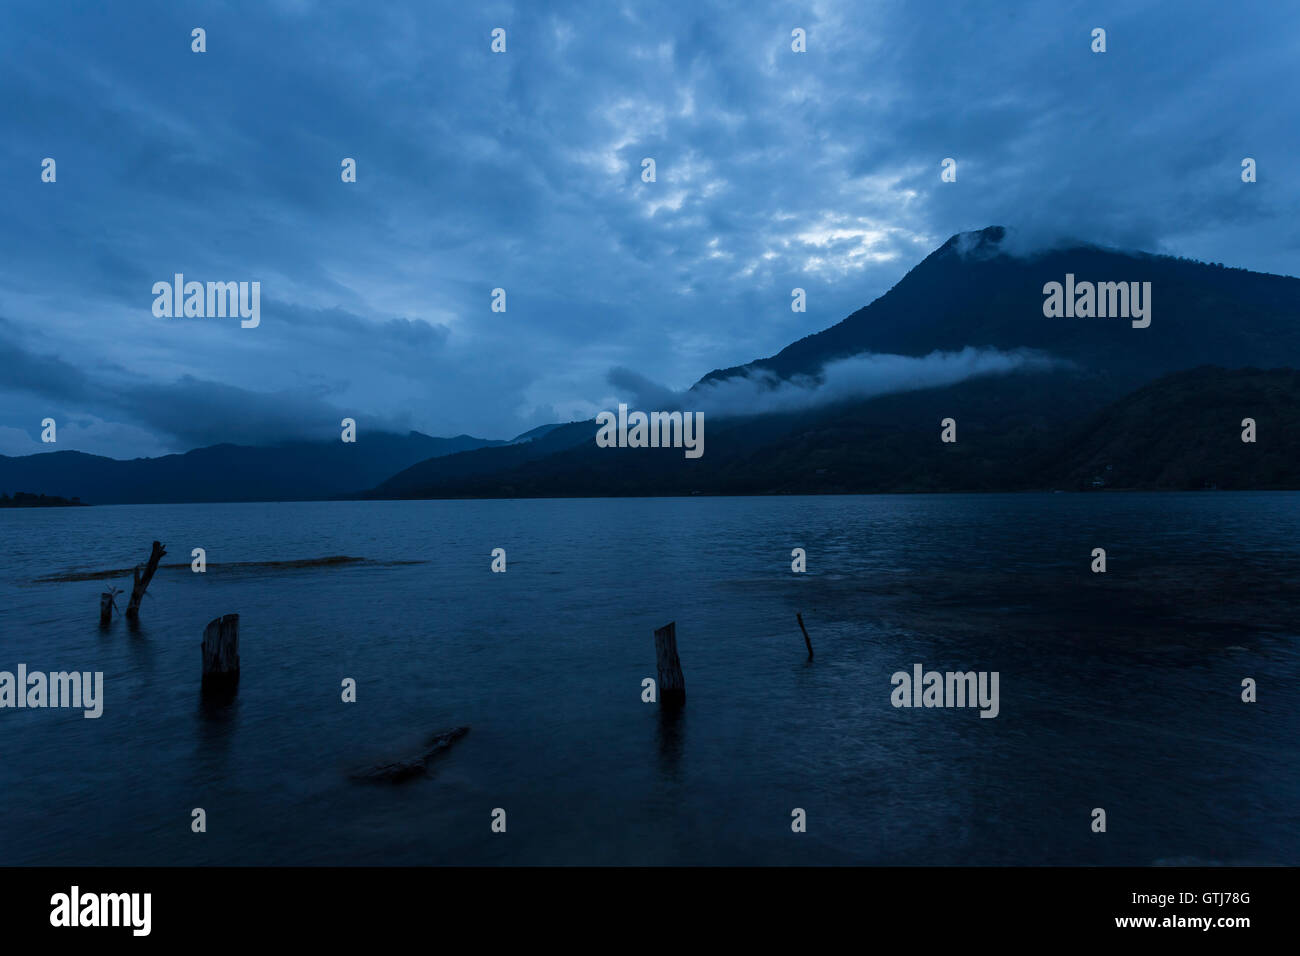 A calm and serene scene of the San Pedro Volcano from Santiago Atitlan at dusk. Stock Photo